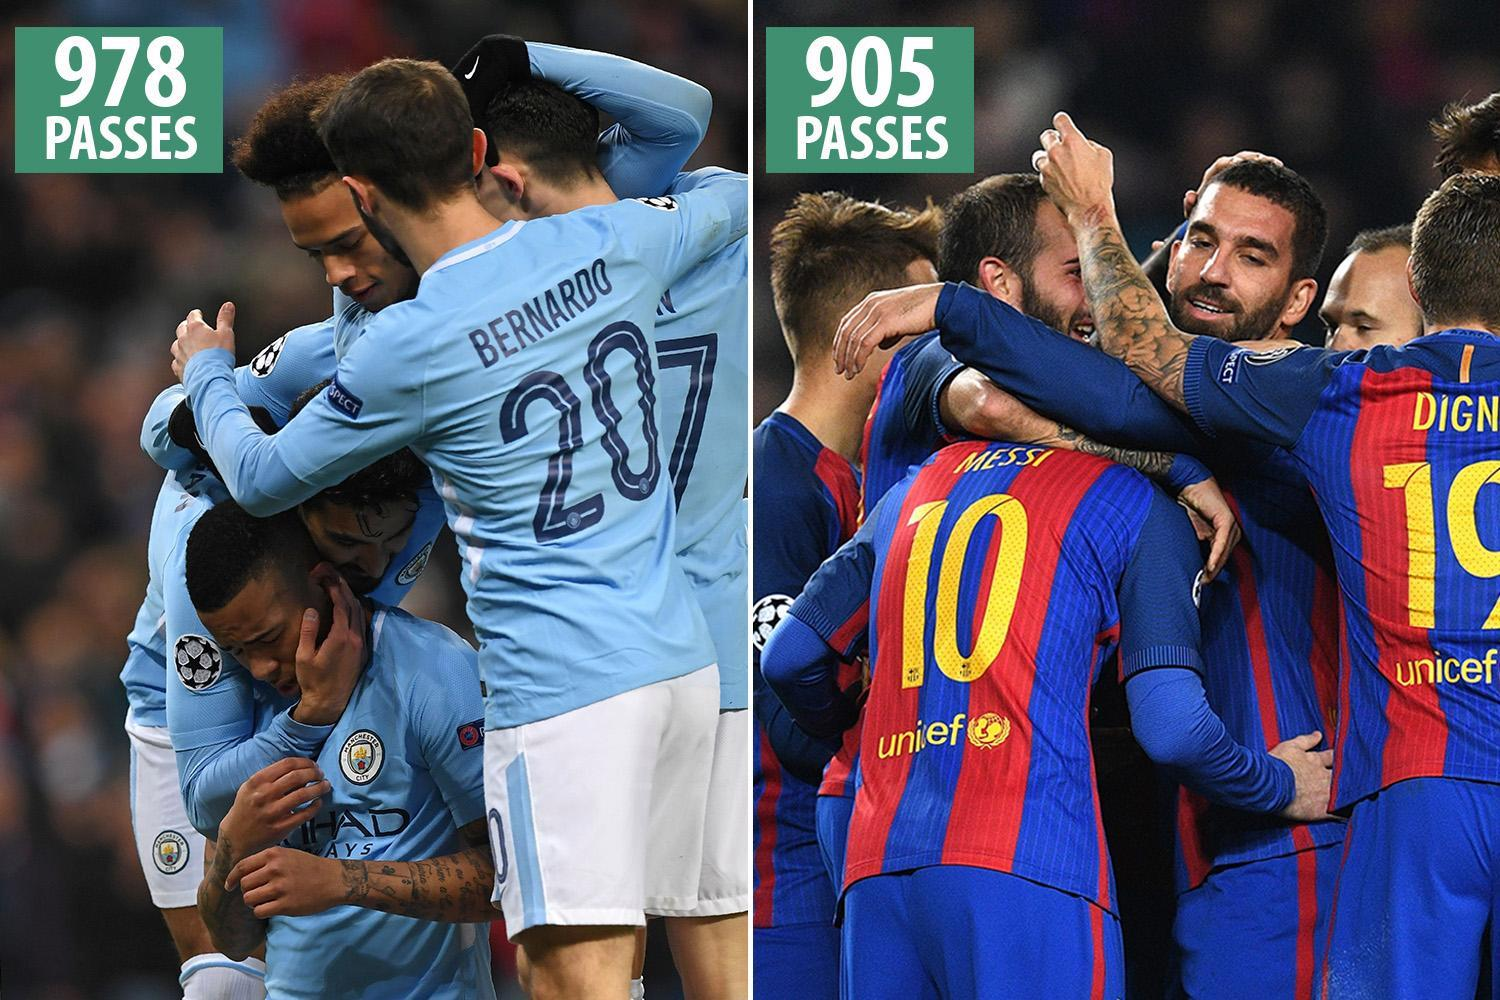 Manchester City shatter the Champions League passing record… just three days after doing so in the Premier League